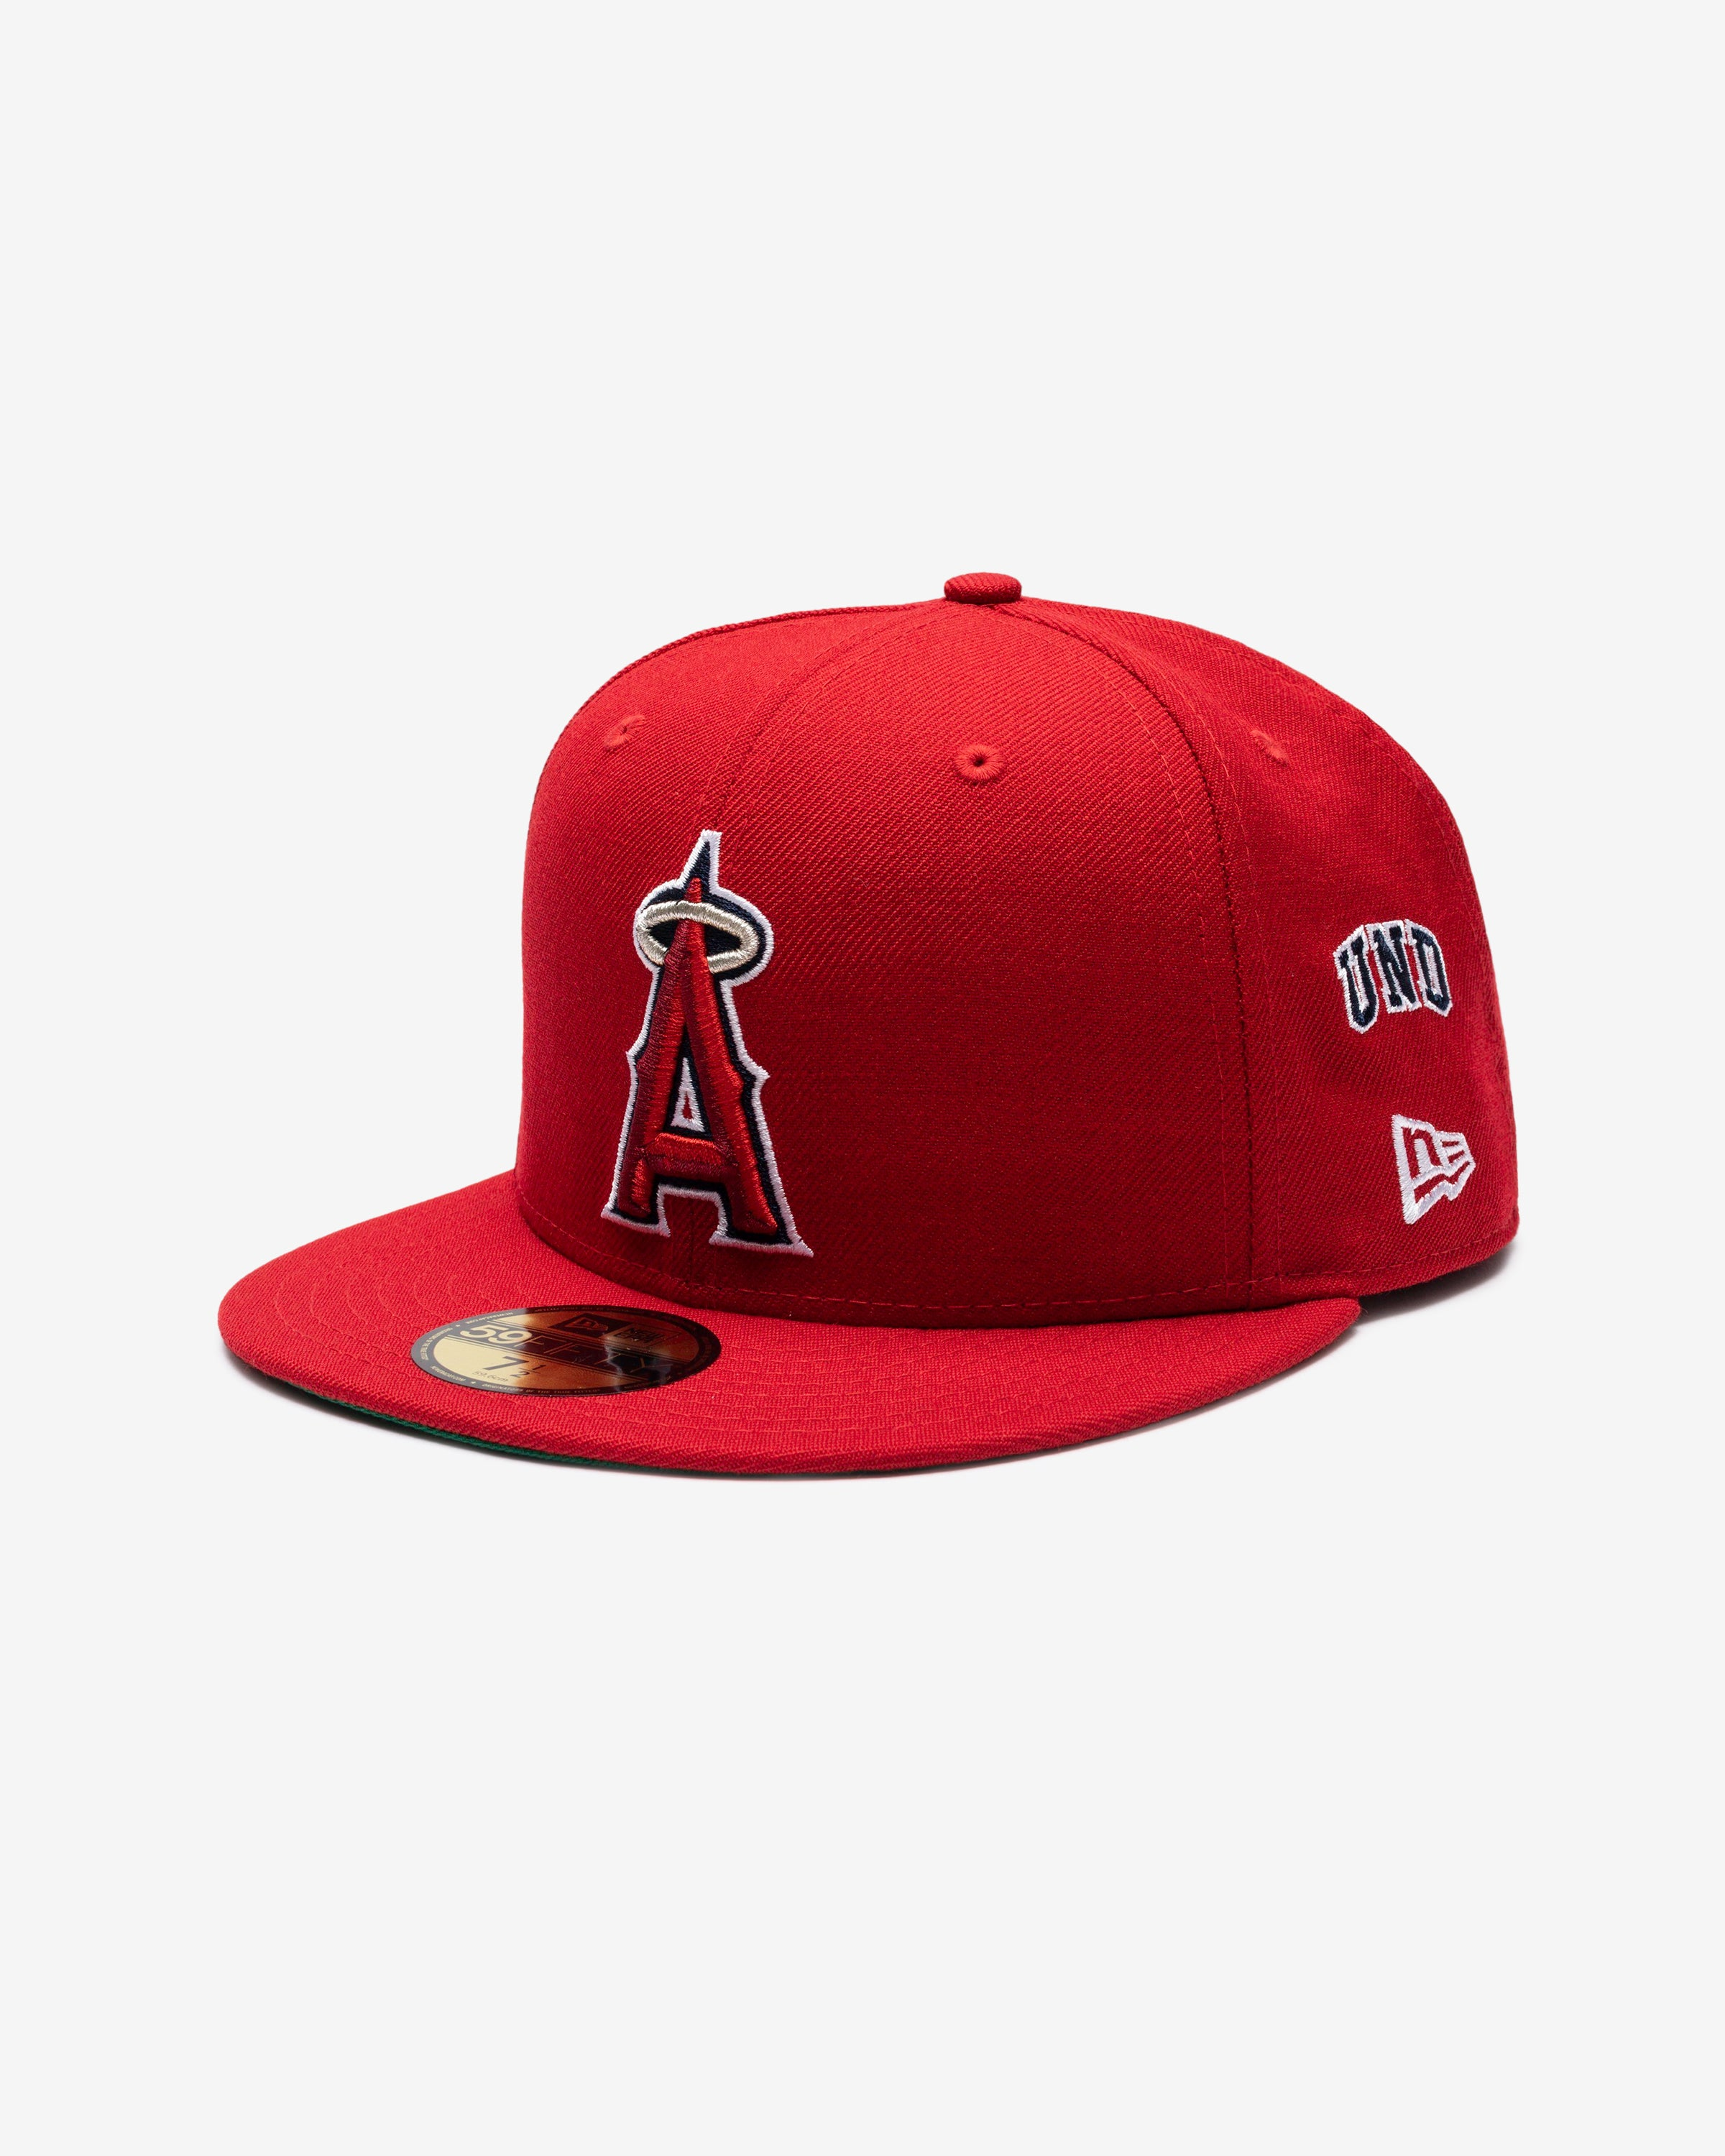 UNDEFEATED X NE X MLB FITTED - LOS ANGELES ANGELS